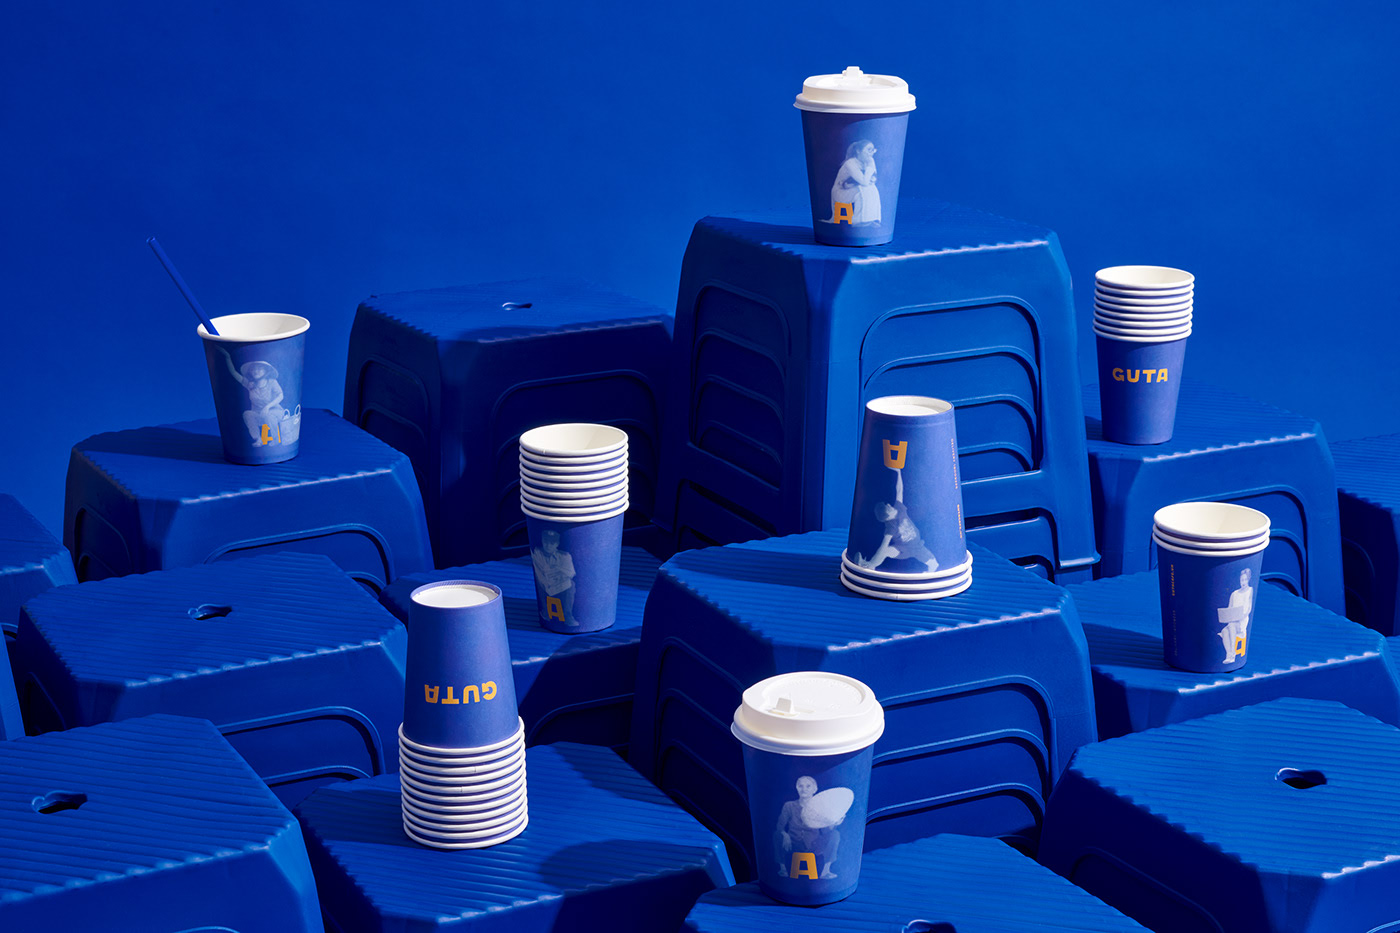 Thumbnail for M-N Associates Draw Inspiration from the Ubiquitous Stool For Guta Cafe Refresh